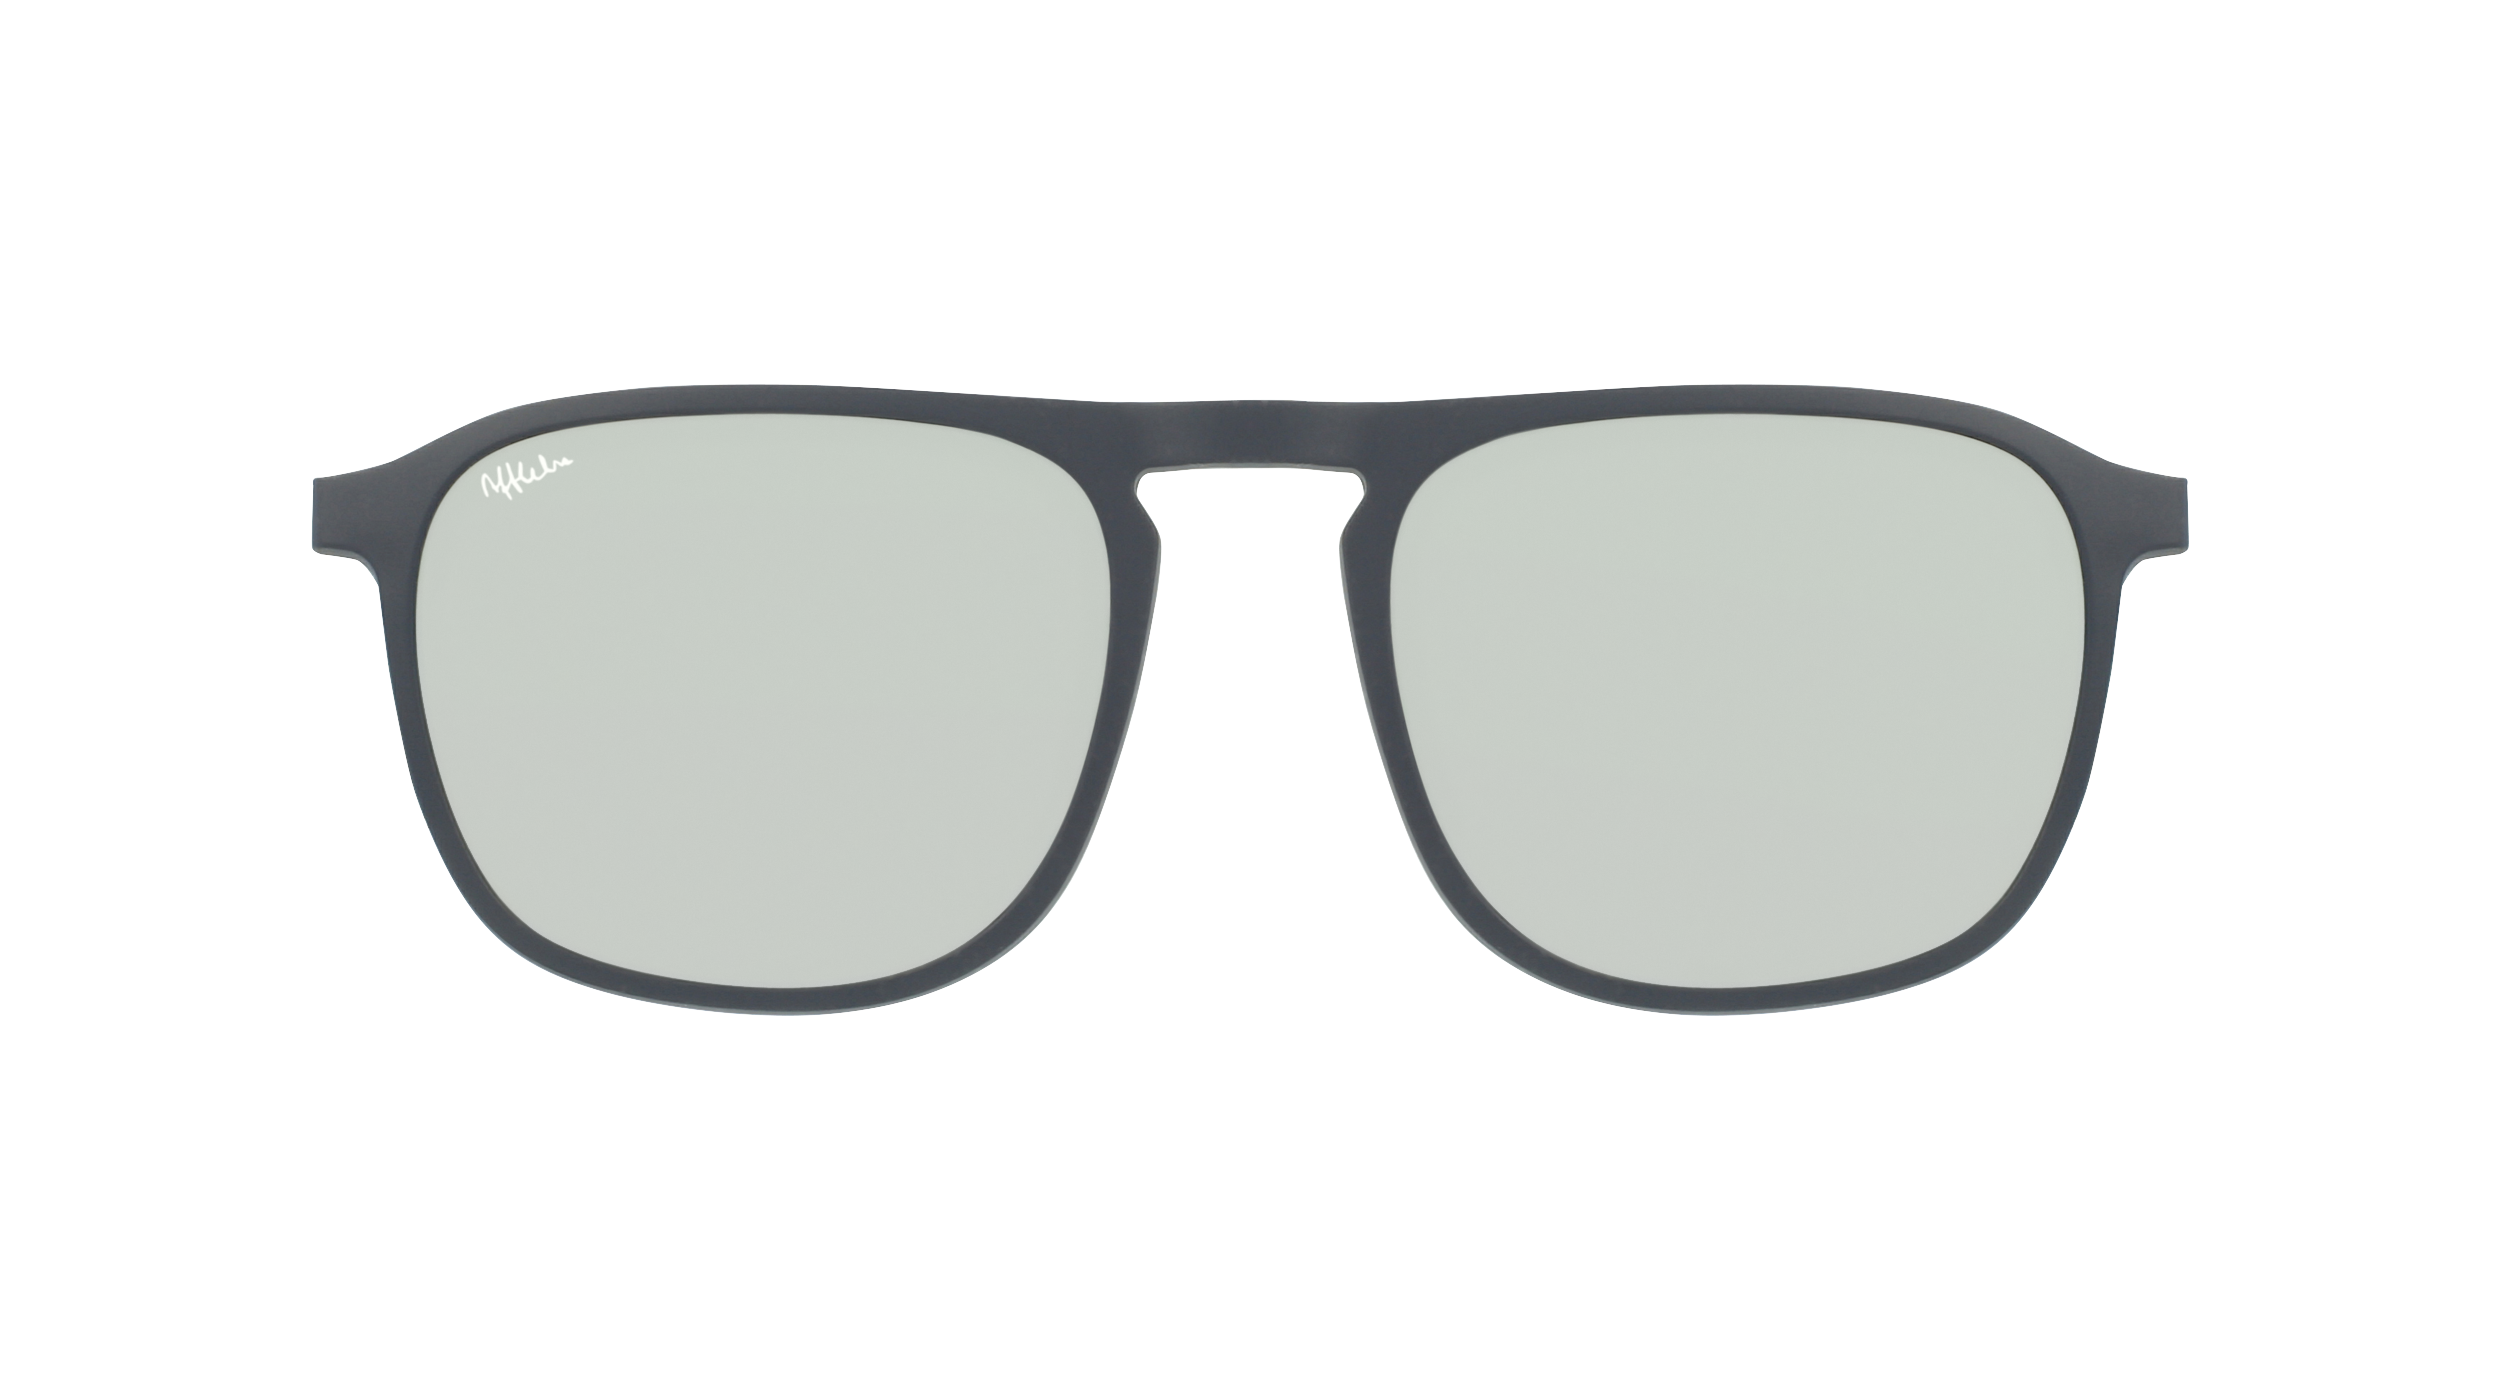 afflelou/france/products/smart_clip/clips_glasses/07630036457290.png